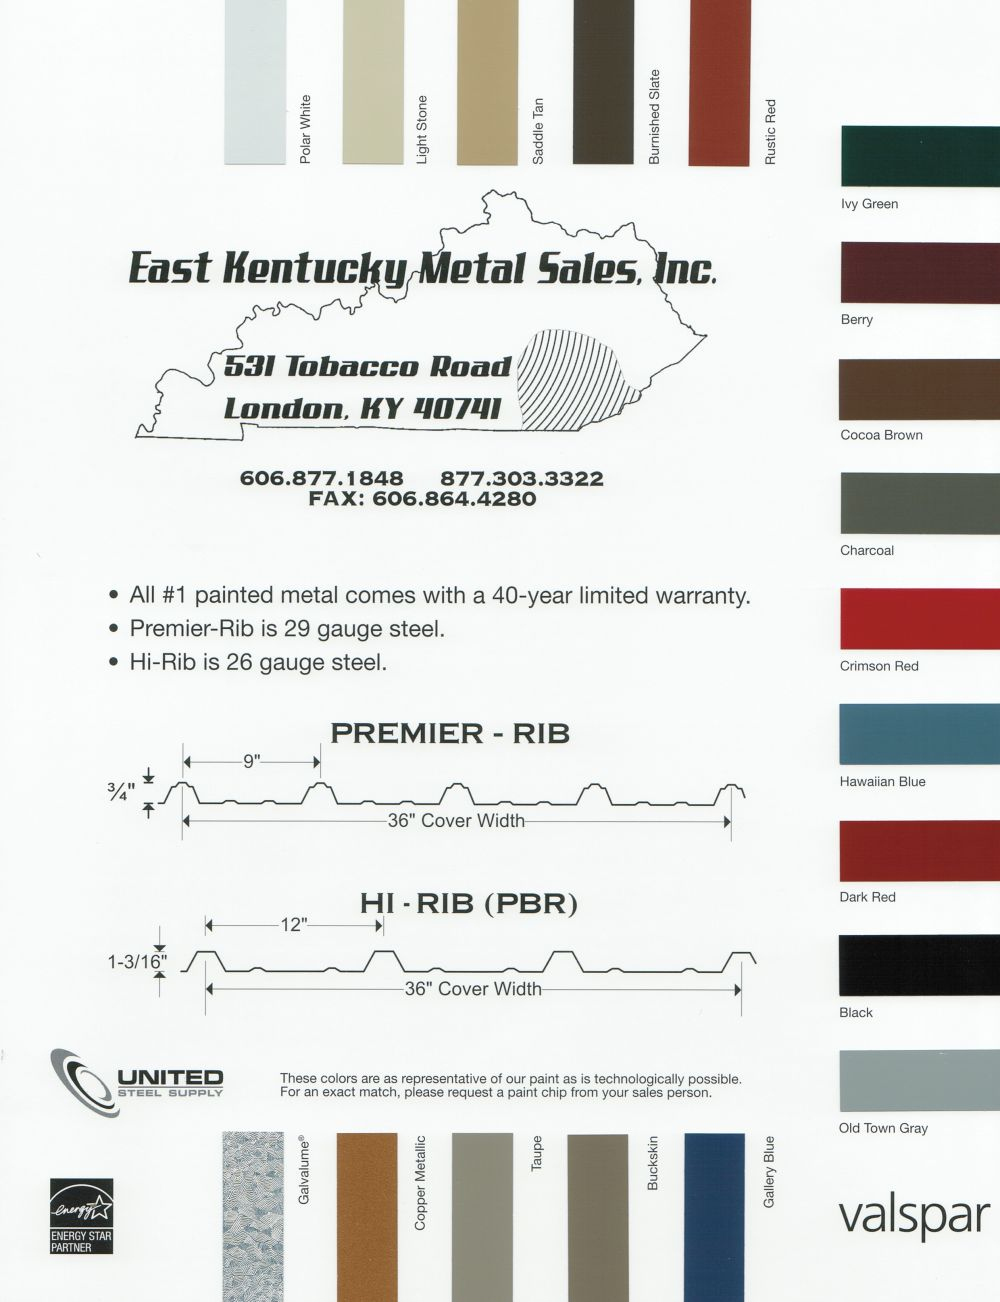 Color chart eastern kentucky metal sales inc click image to enlarge nvjuhfo Choice Image